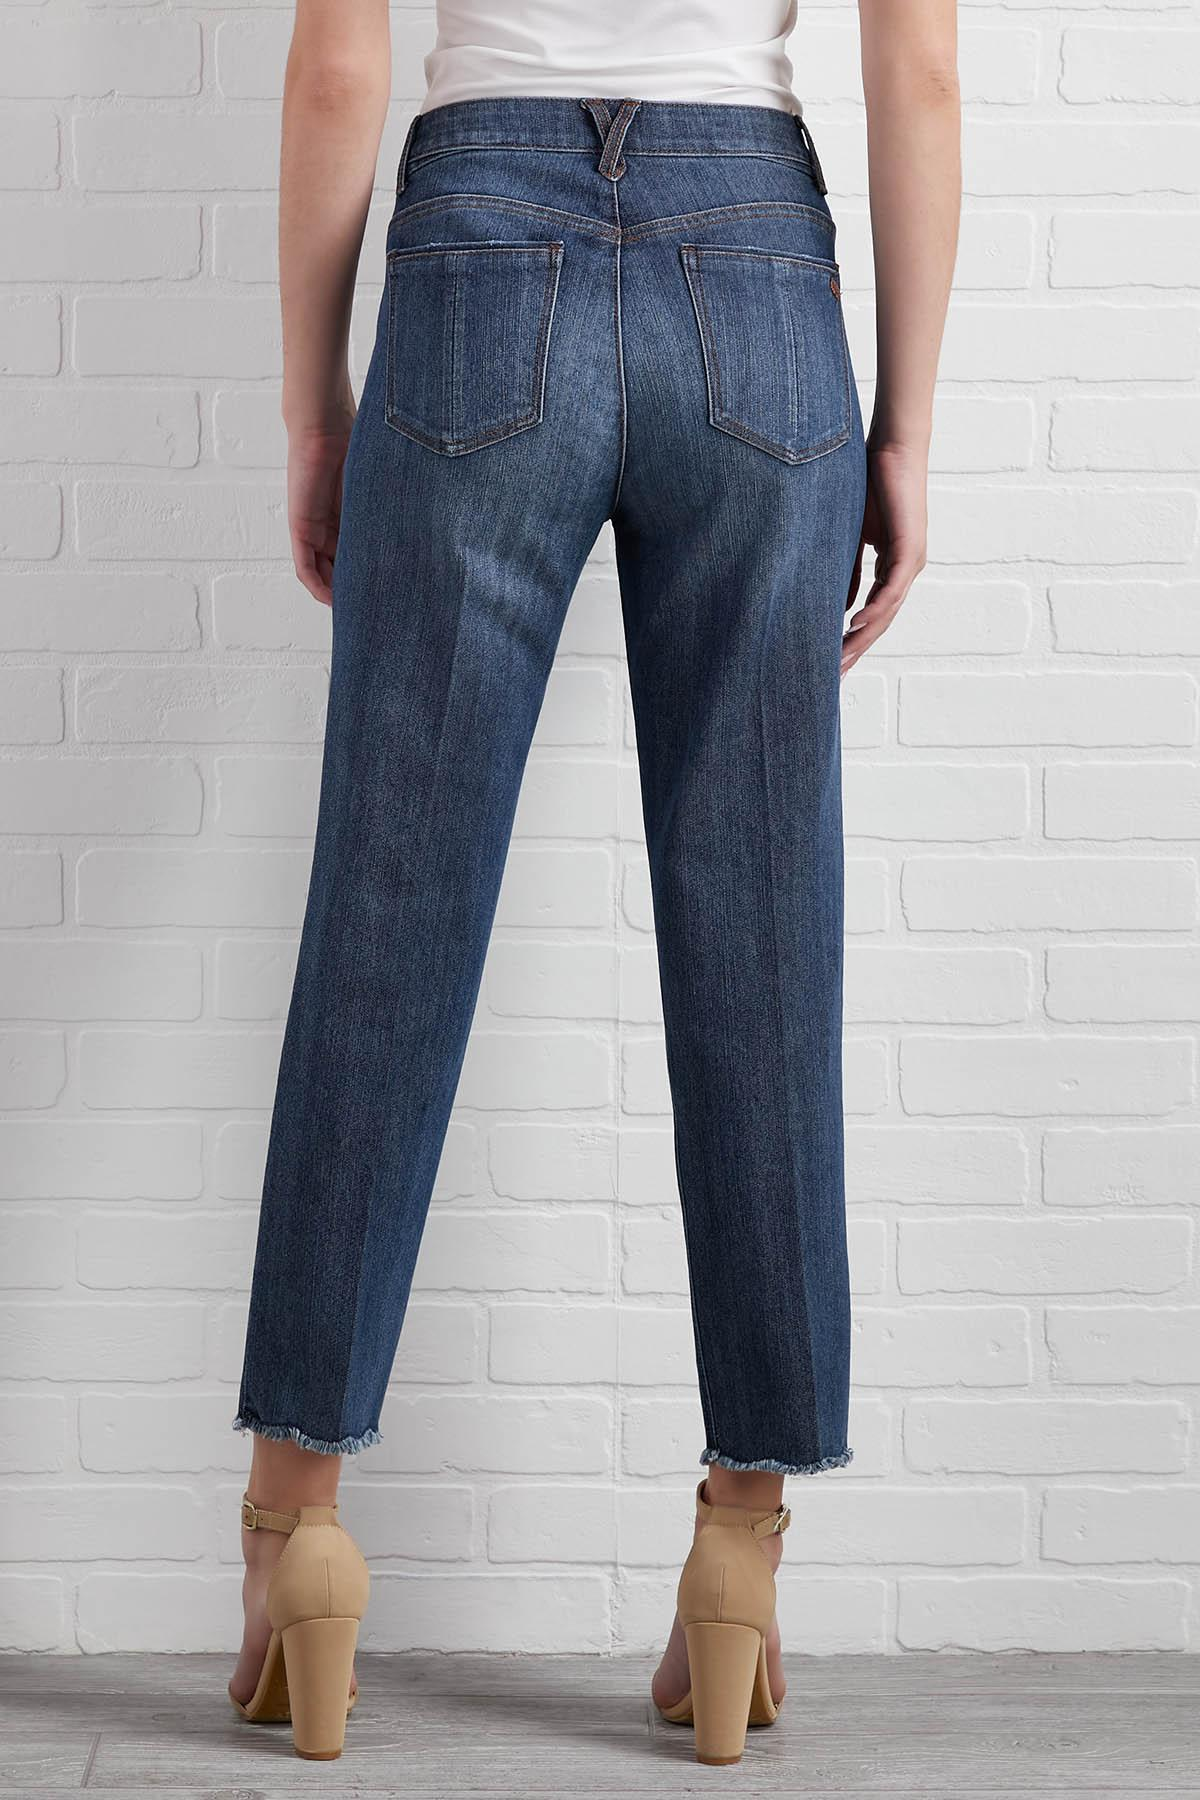 Fray It Loud And Clear Jeans